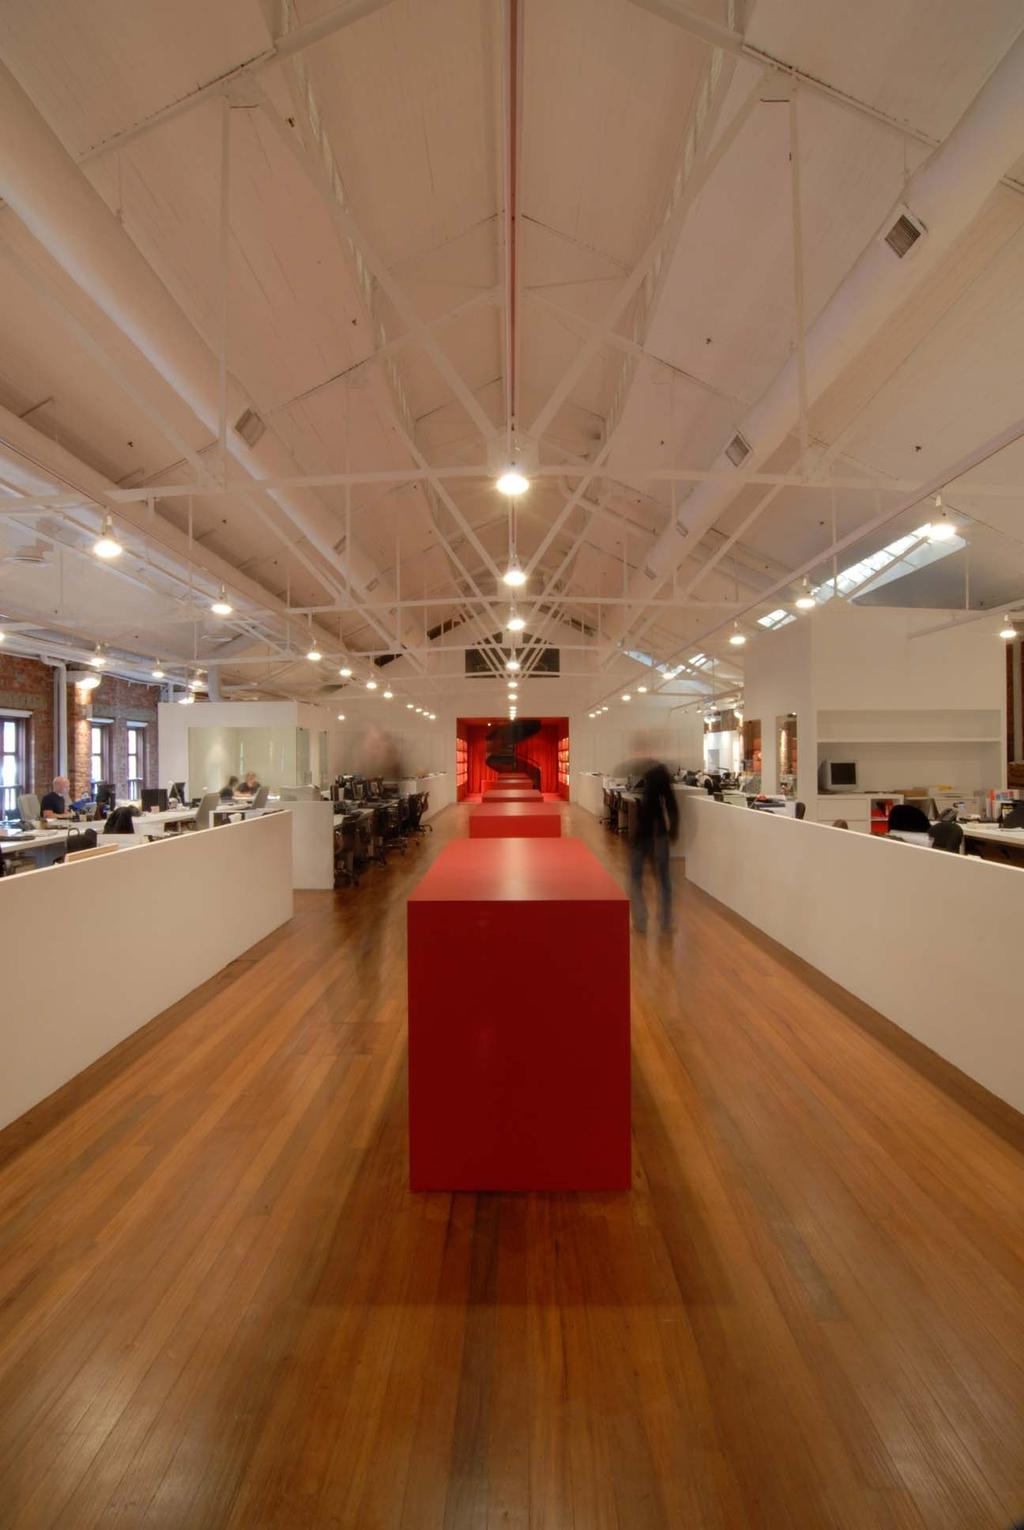 BBH, Commercial, Architect, Ministry of Design, Contemporary, Wooden Flooring, White Ceiling, High Ceiling, Red Partition, White Working Desk, Open Concept Space, Lighting